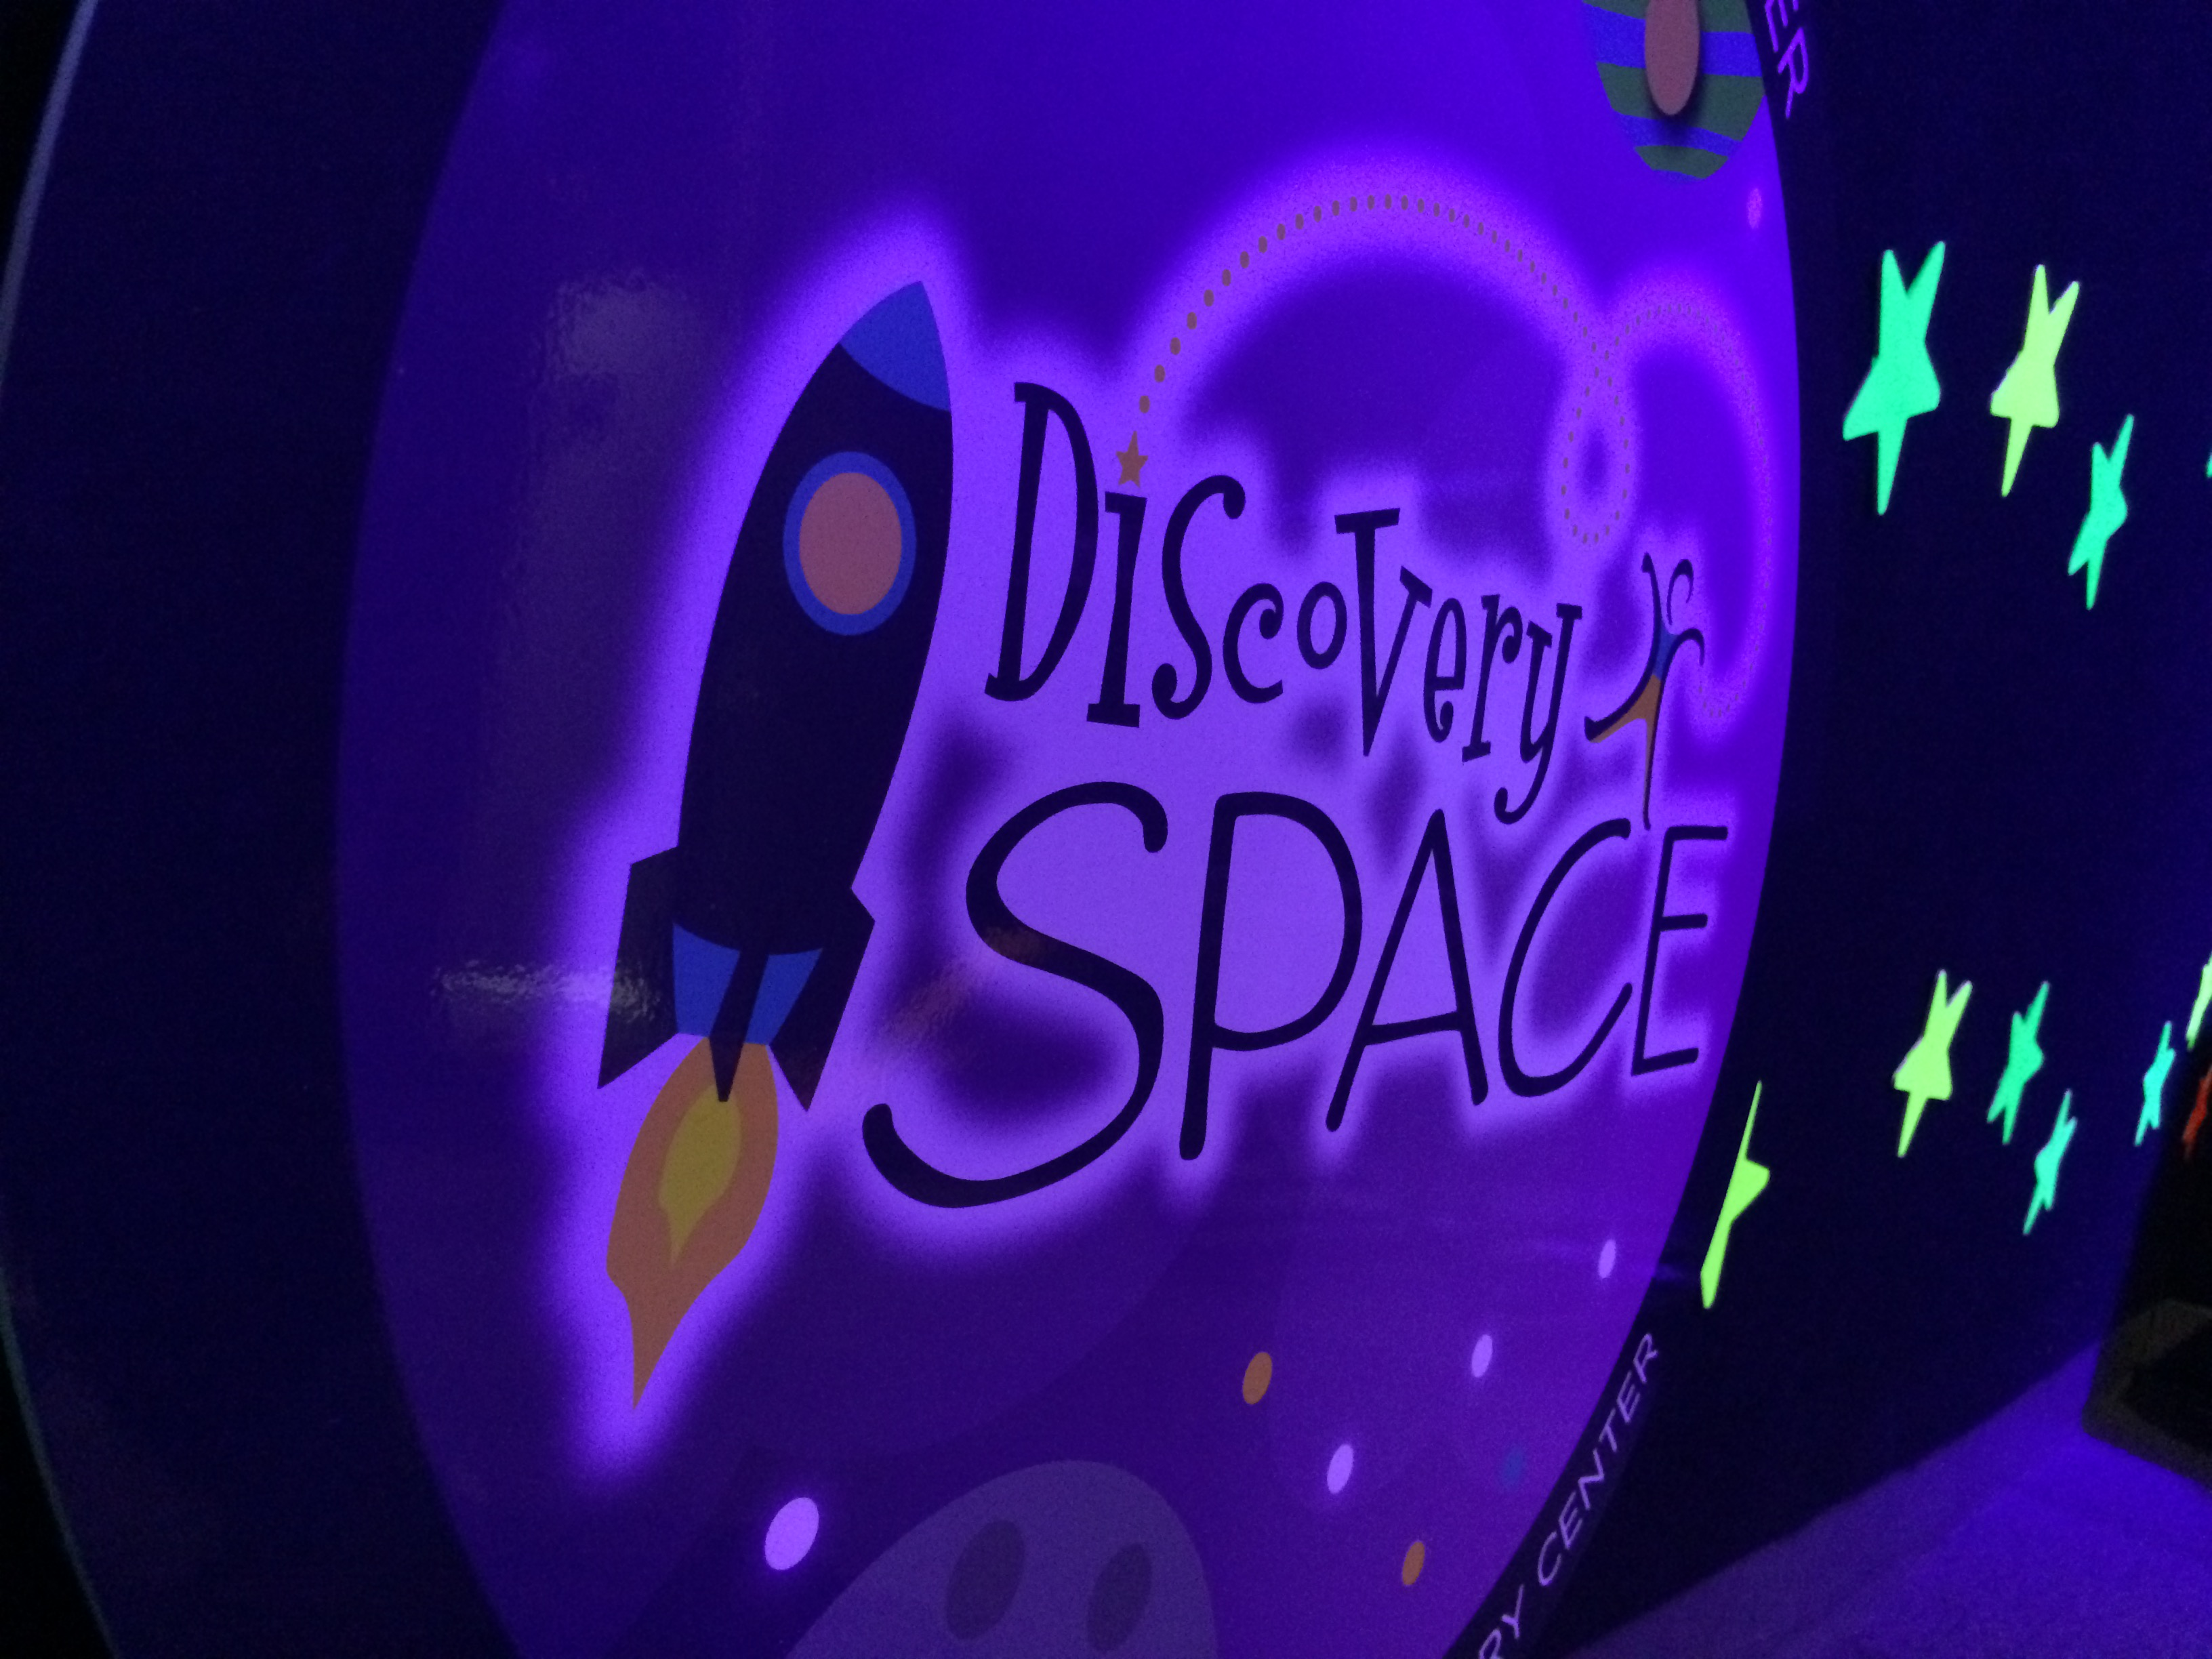 Discovery Space logo next to glow in the dark stars attached to the velcro wall and glowing in blacklight